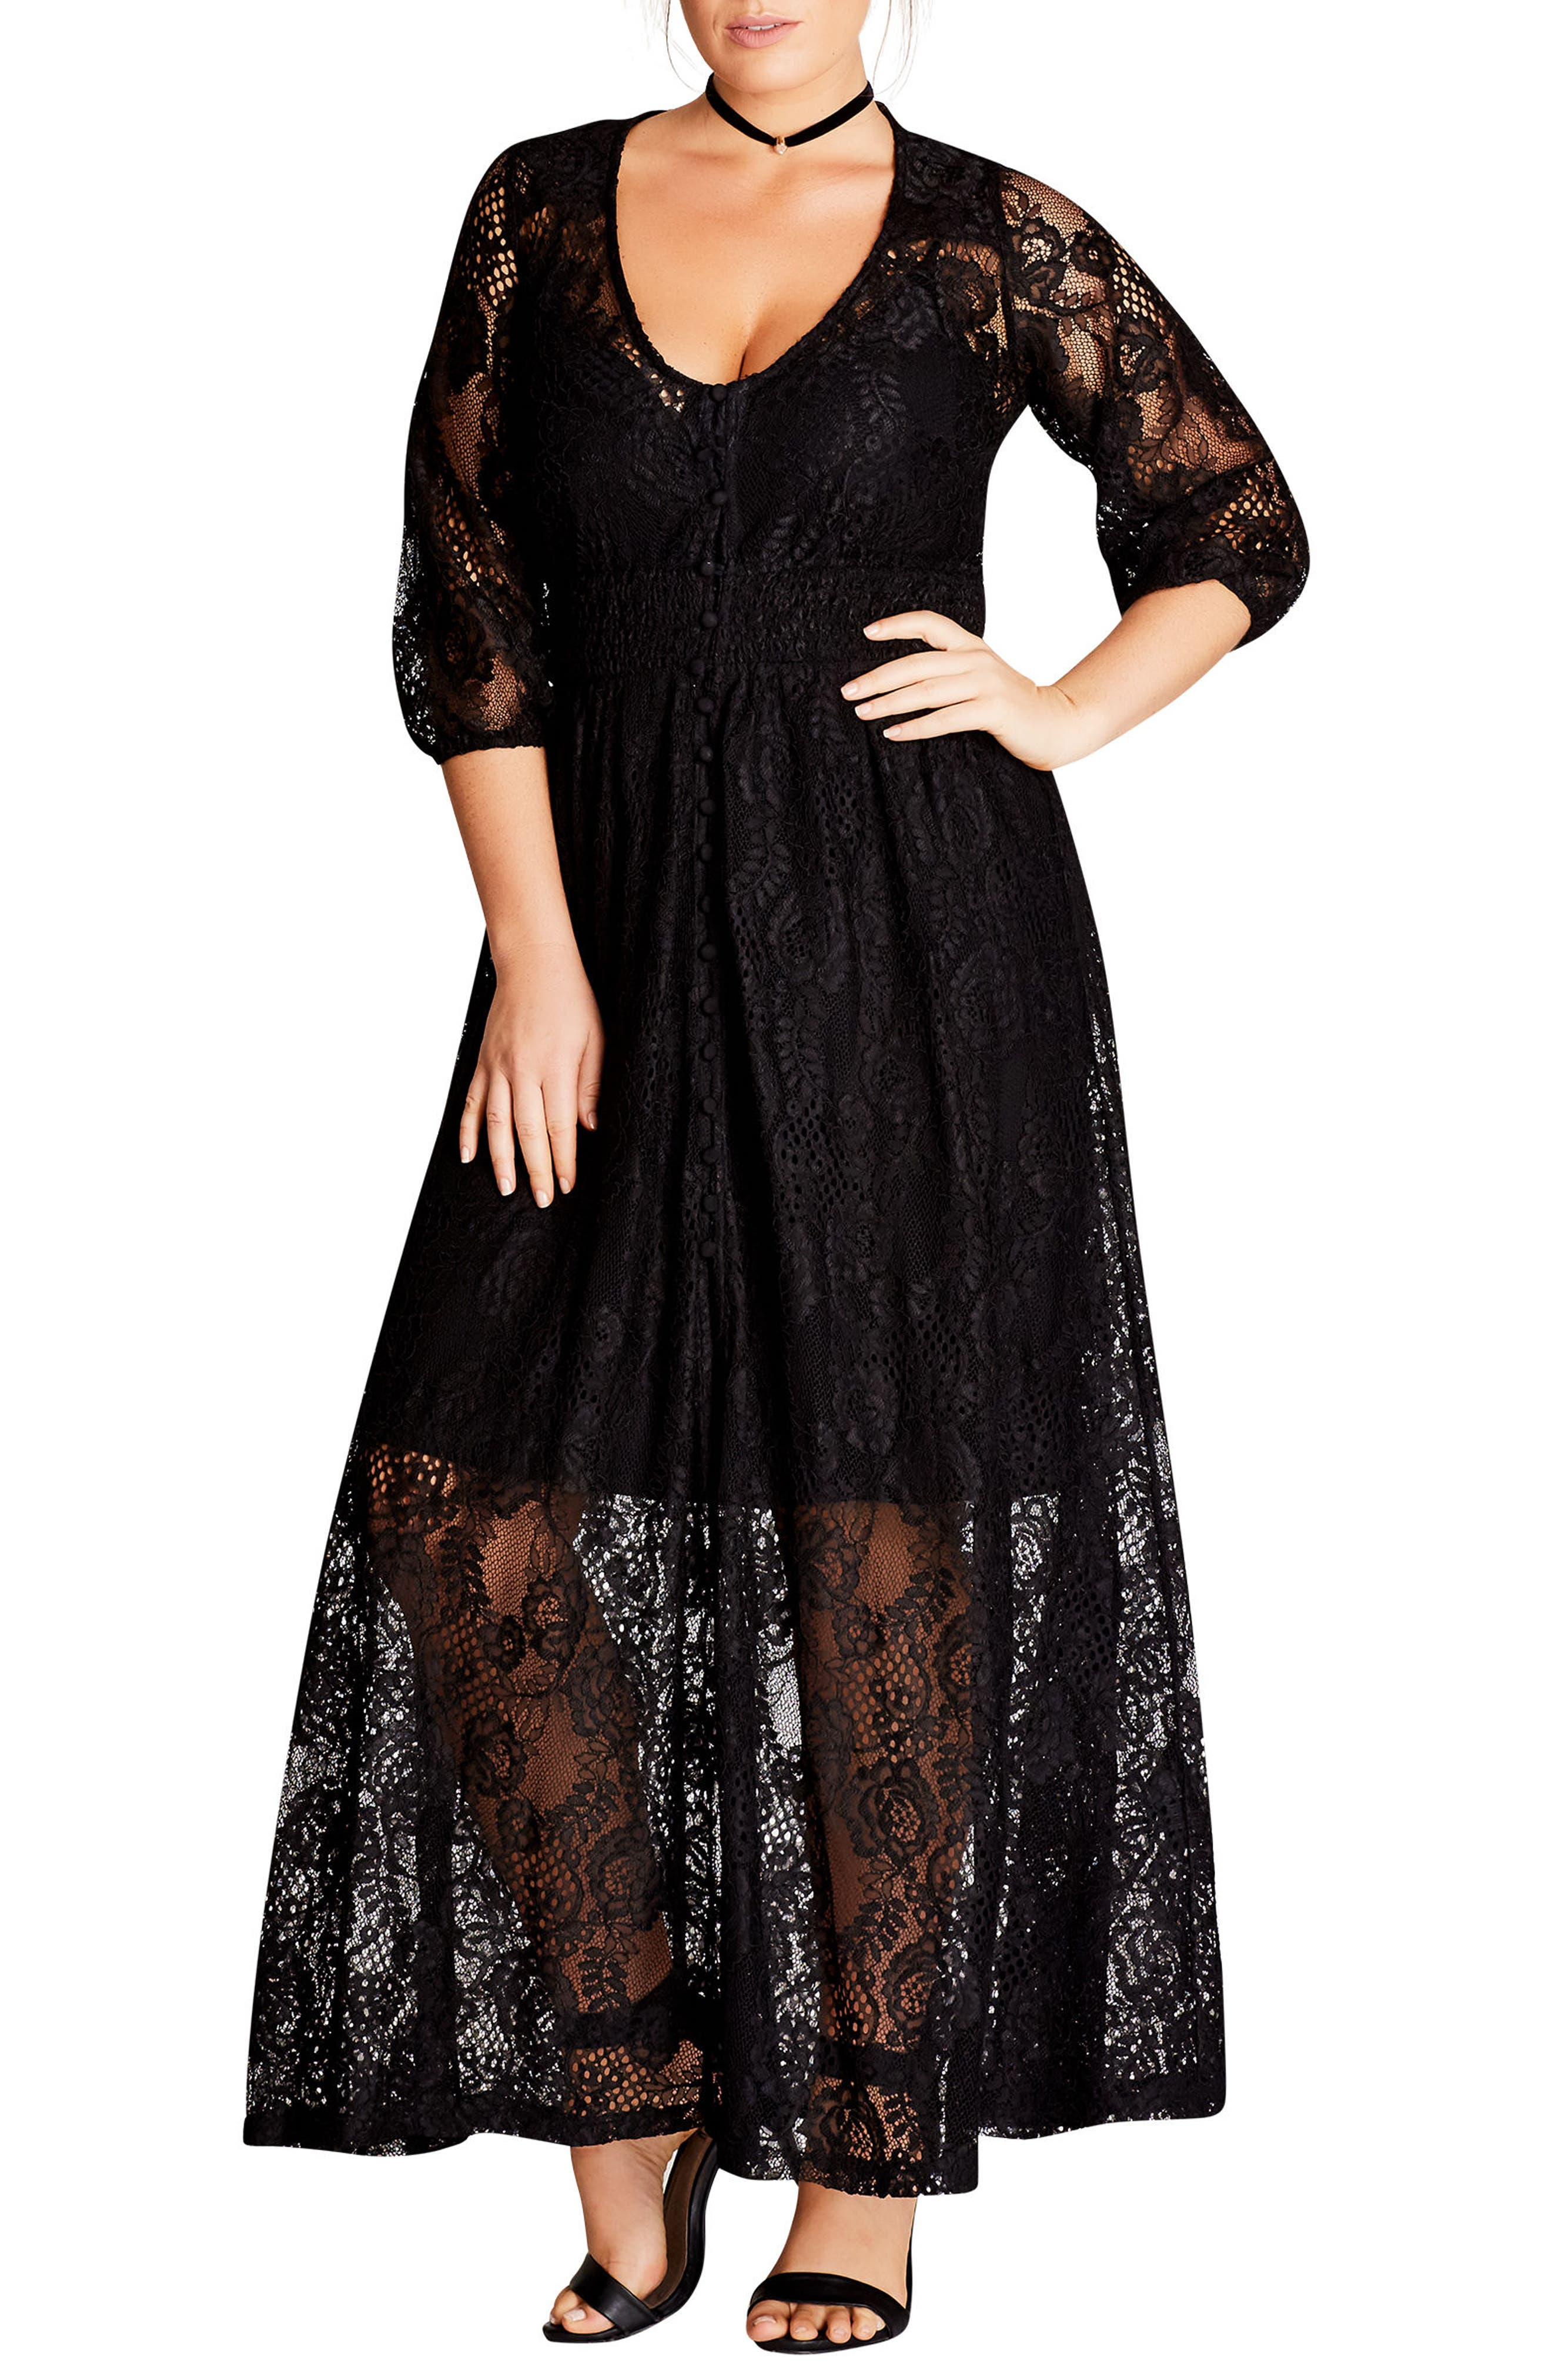 Alternate Image 1 Selected - City Chic Divine Creation Lace Maxi Dress (Plus Size)